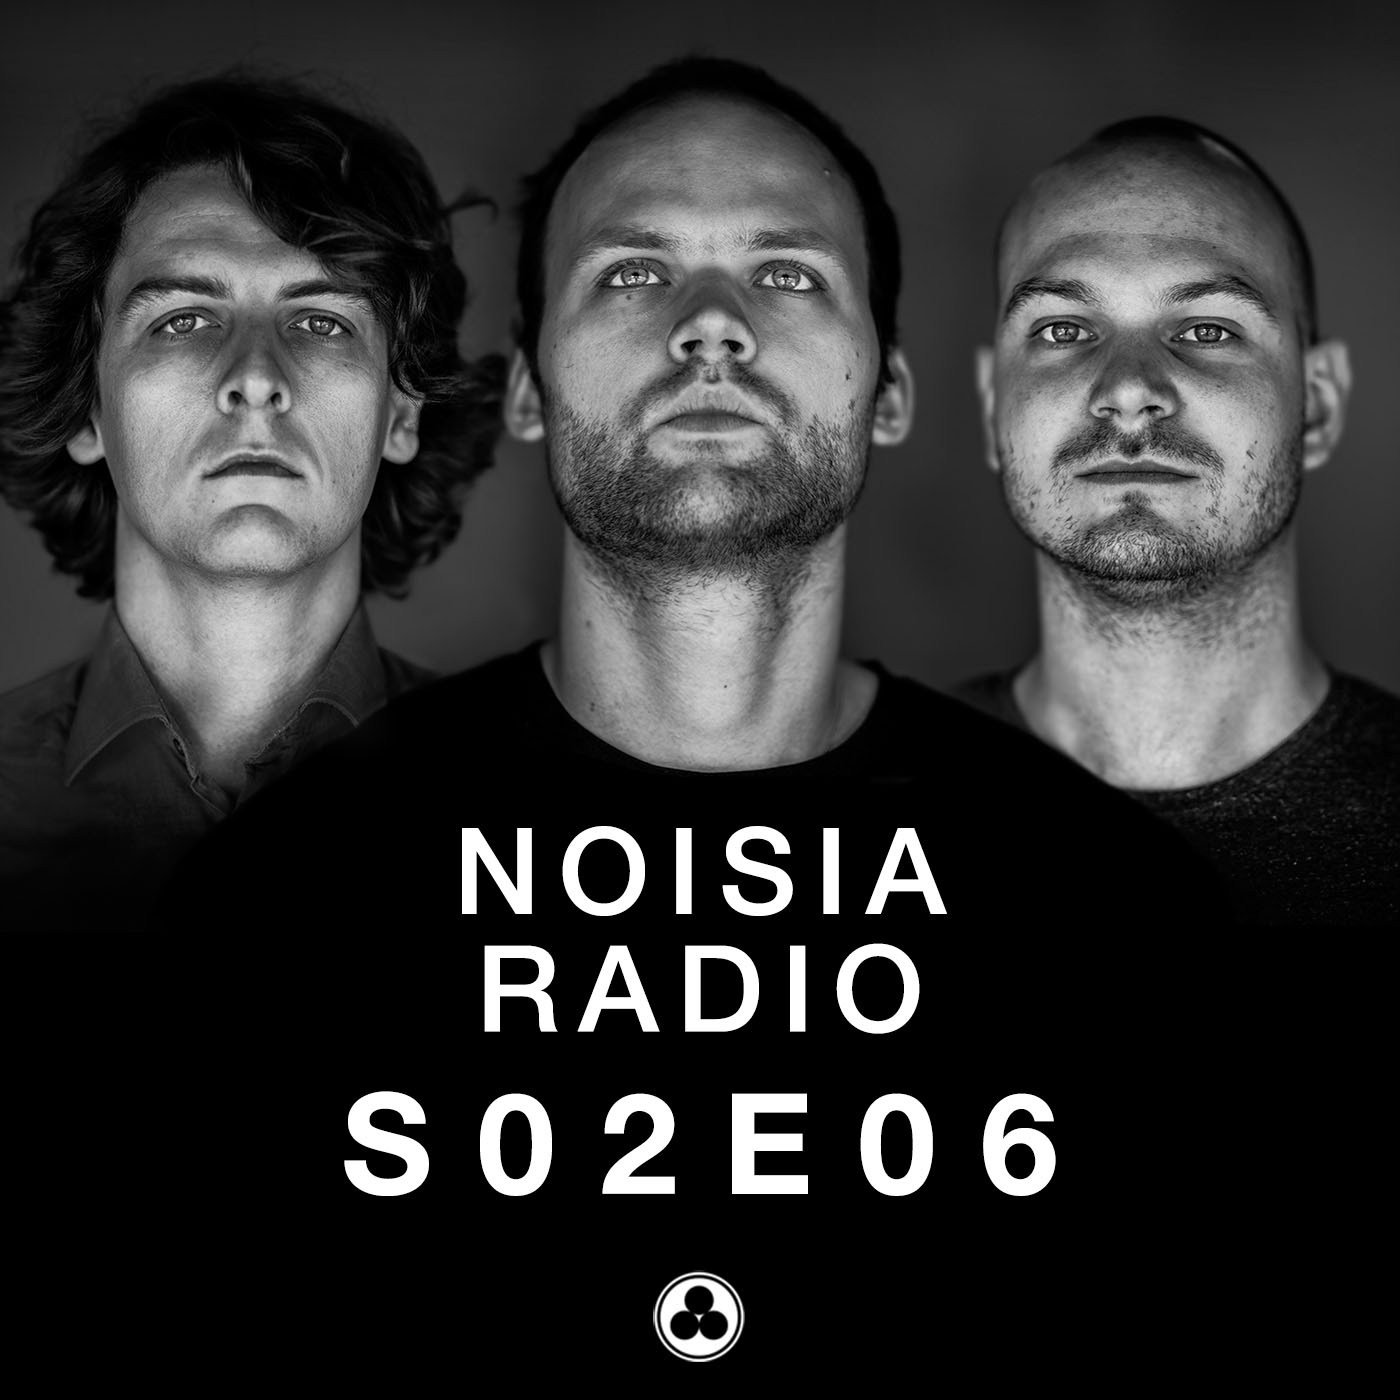 Noisia Radio S02E06 (incl. Ivy Lab guest mix)